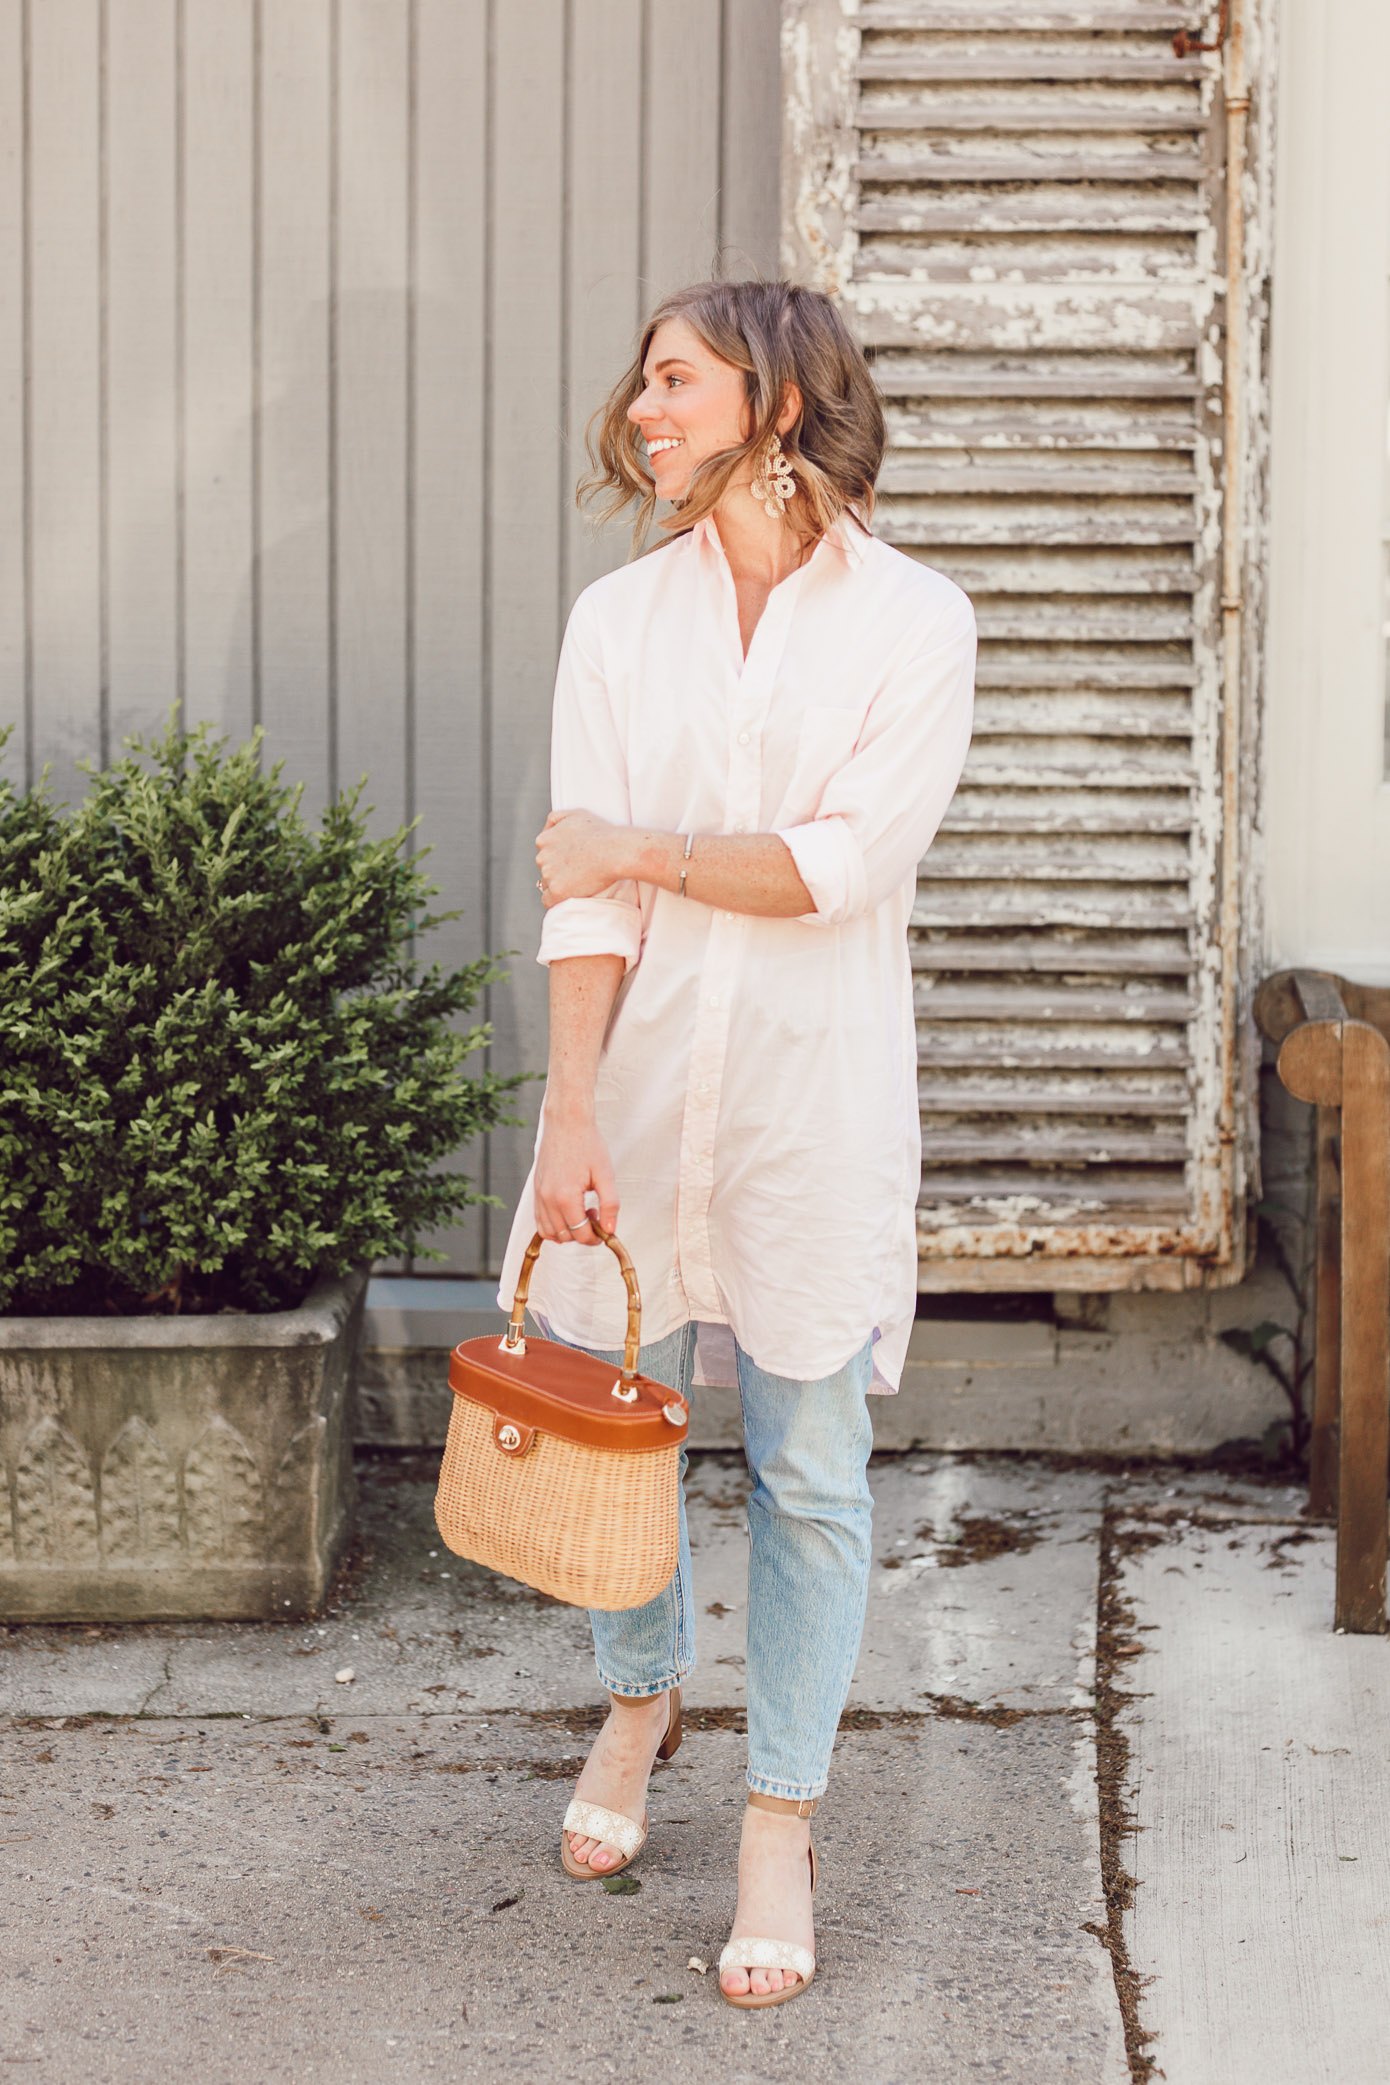 Laura Leigh of Louella Reese shows how to style an oversized button down shirt over jeans for spring | ft. Frank & Eileen, Everlane, Jack Rogers, and J.McLaughlin | Louella Reese